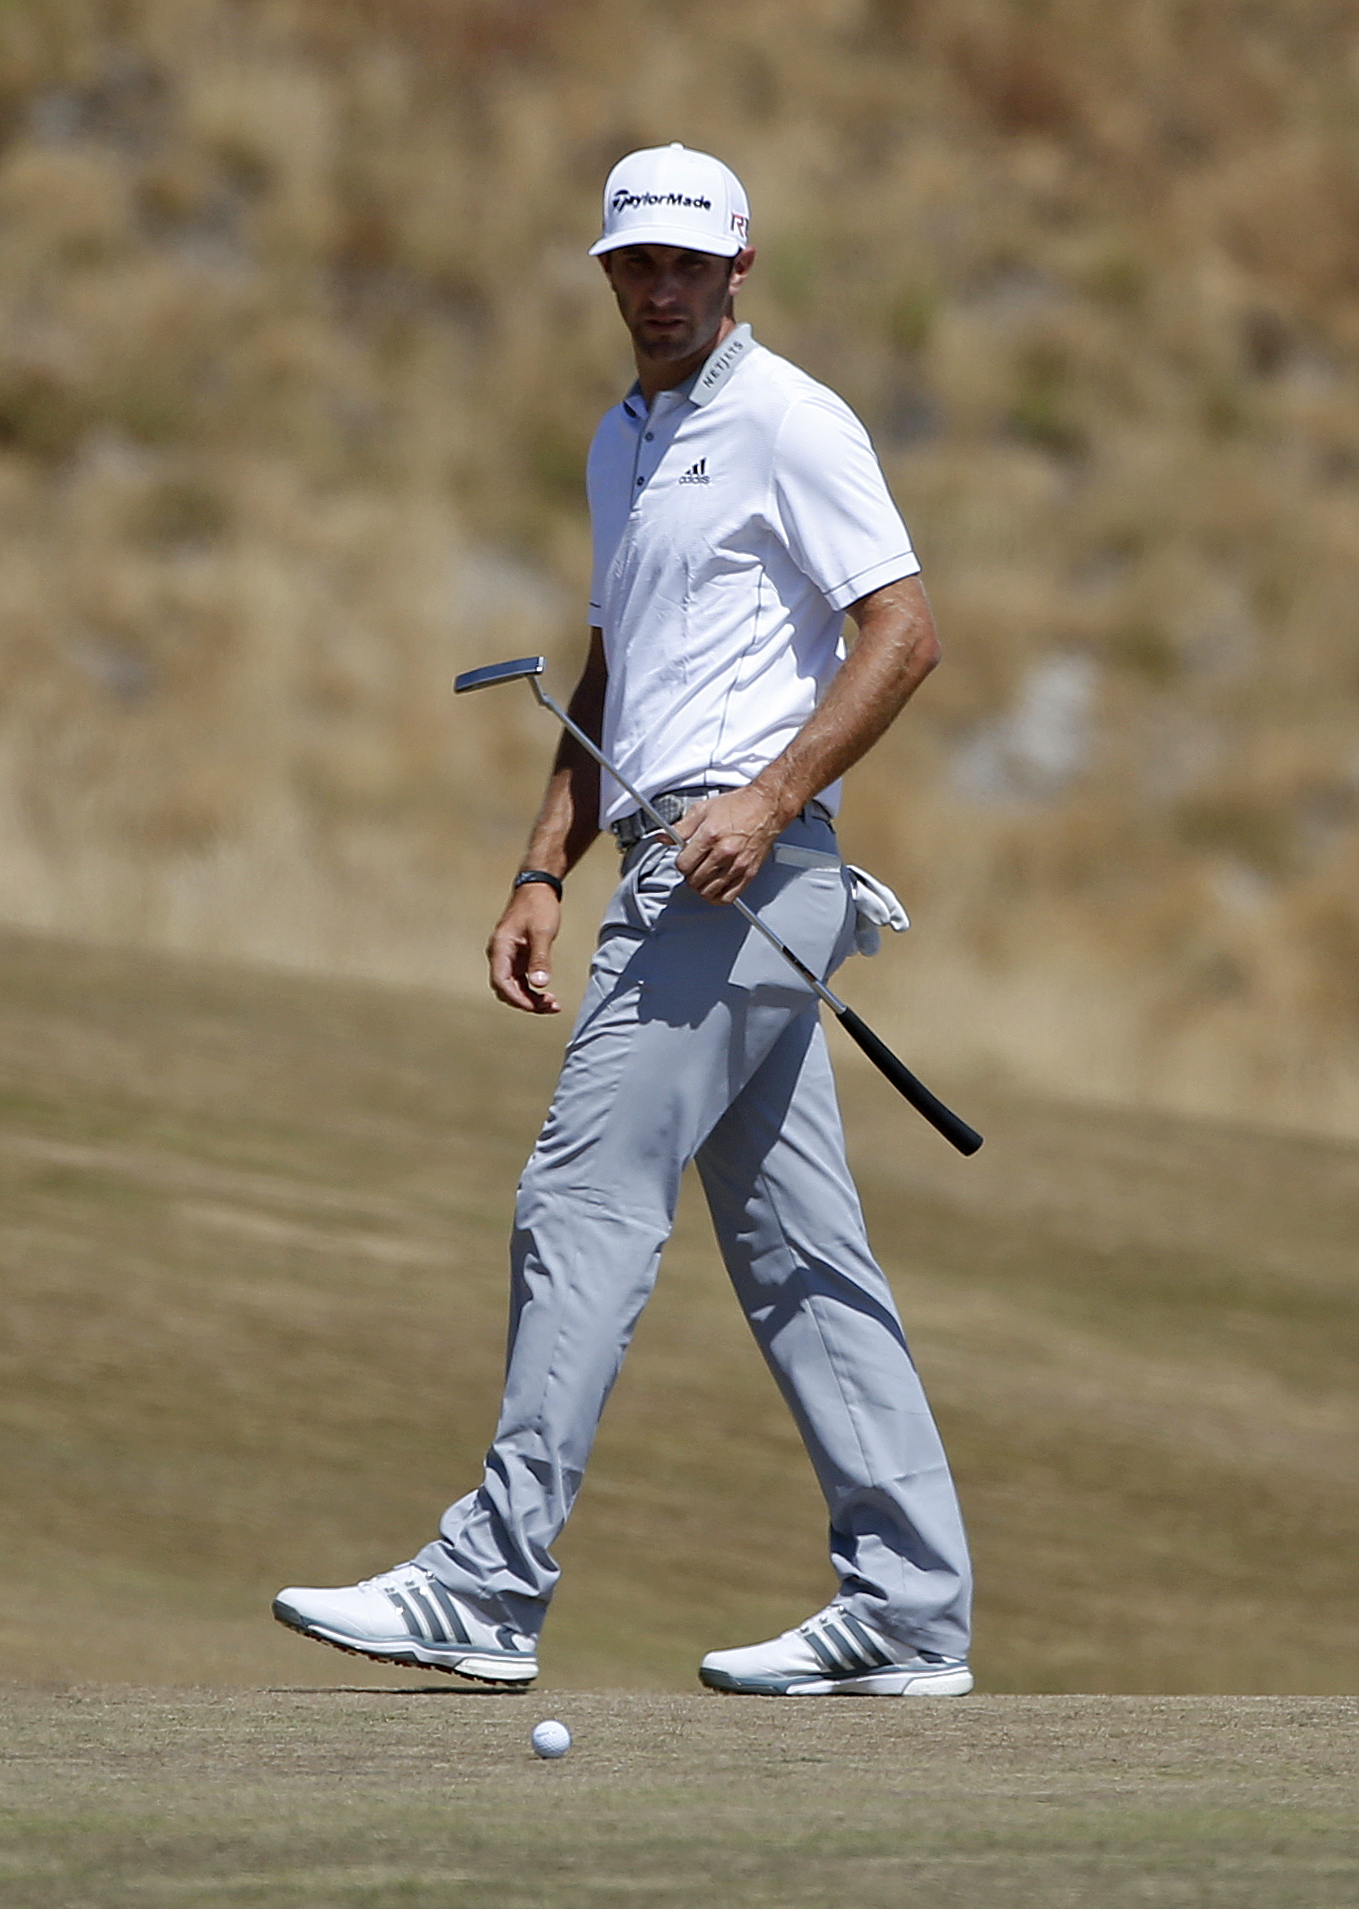 Dustin Johnson watches his putt on the first hole during the final round of the U.S. Open golf tournament at Chambers Bay on Sunday, June 21, 2015 in University Place, Wash. (AP Photo/Lenny Ignelzi)